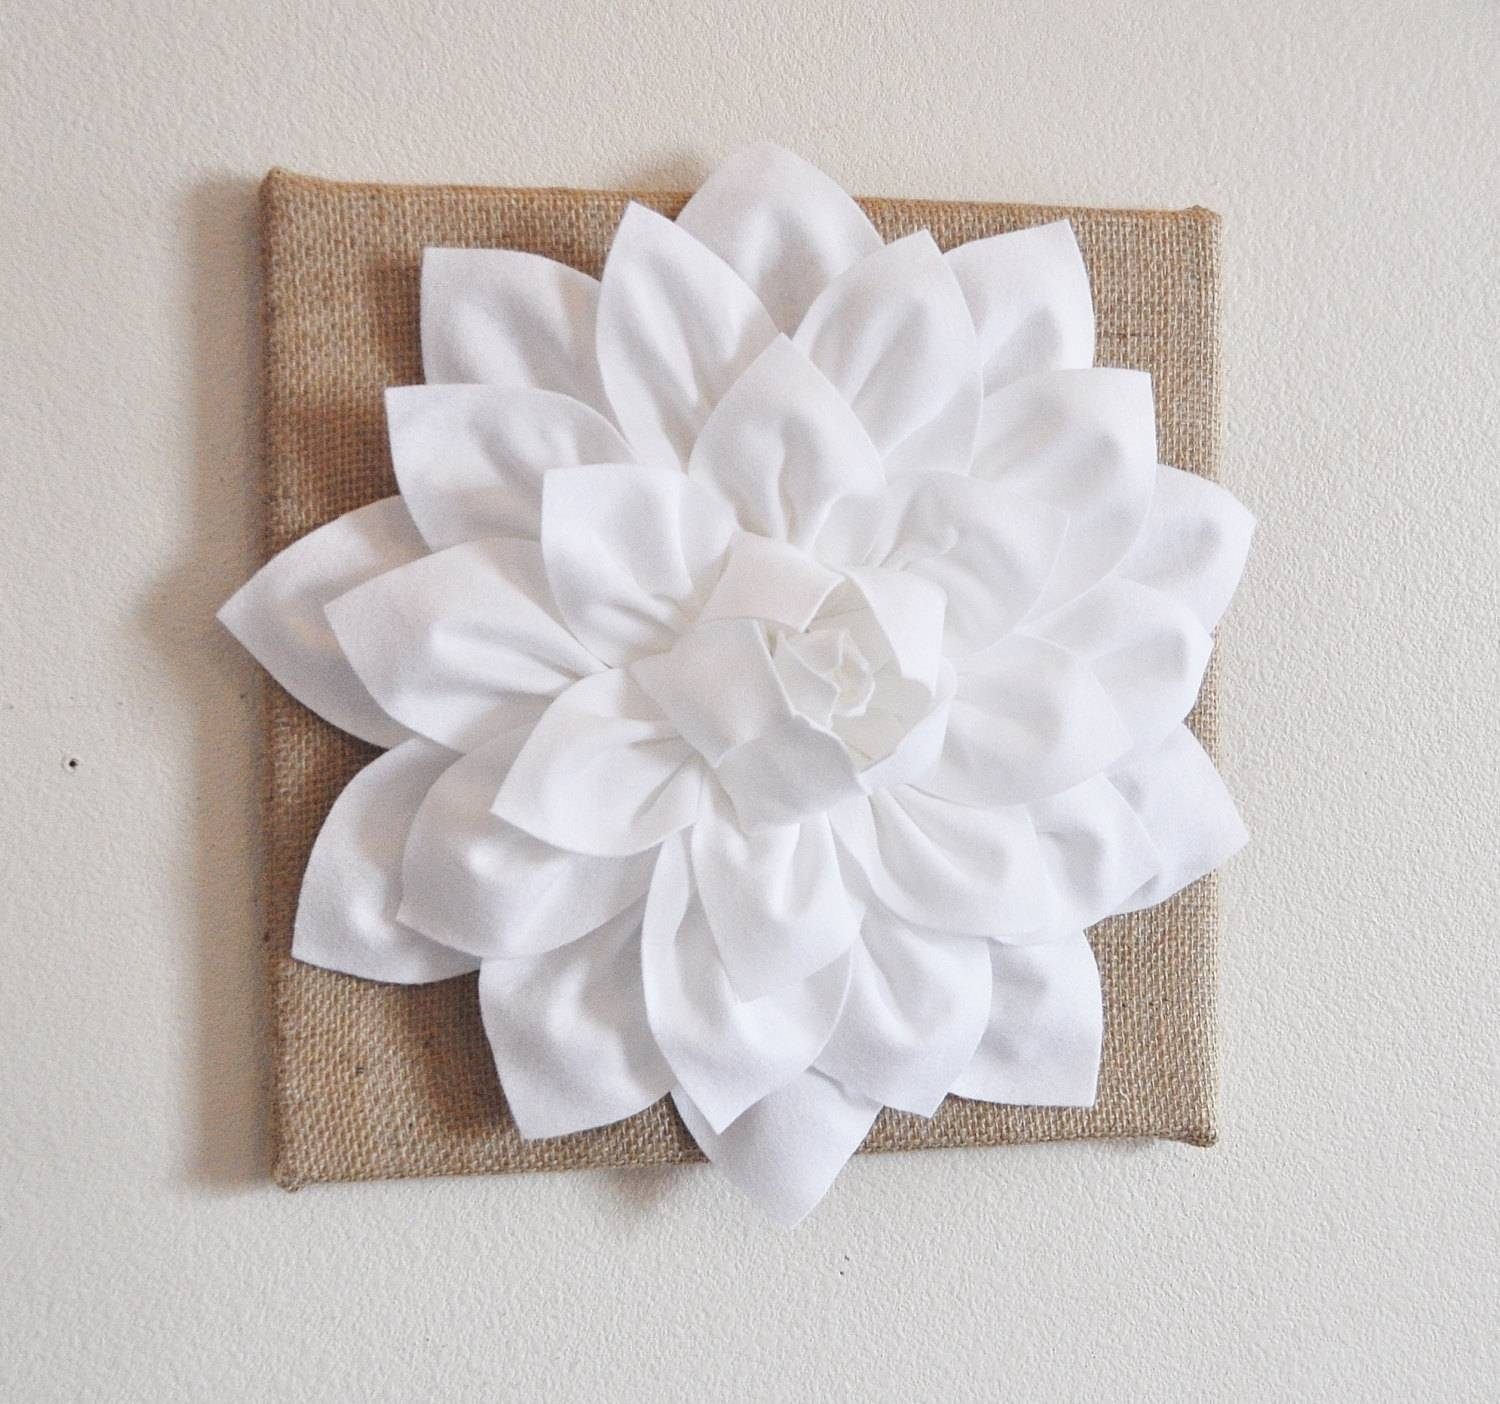 Wall Flower White Dahlia On Burlap 12 X12 Canvas Wall Intended For 2018 Flowers 3D Wall Art (View 20 of 20)